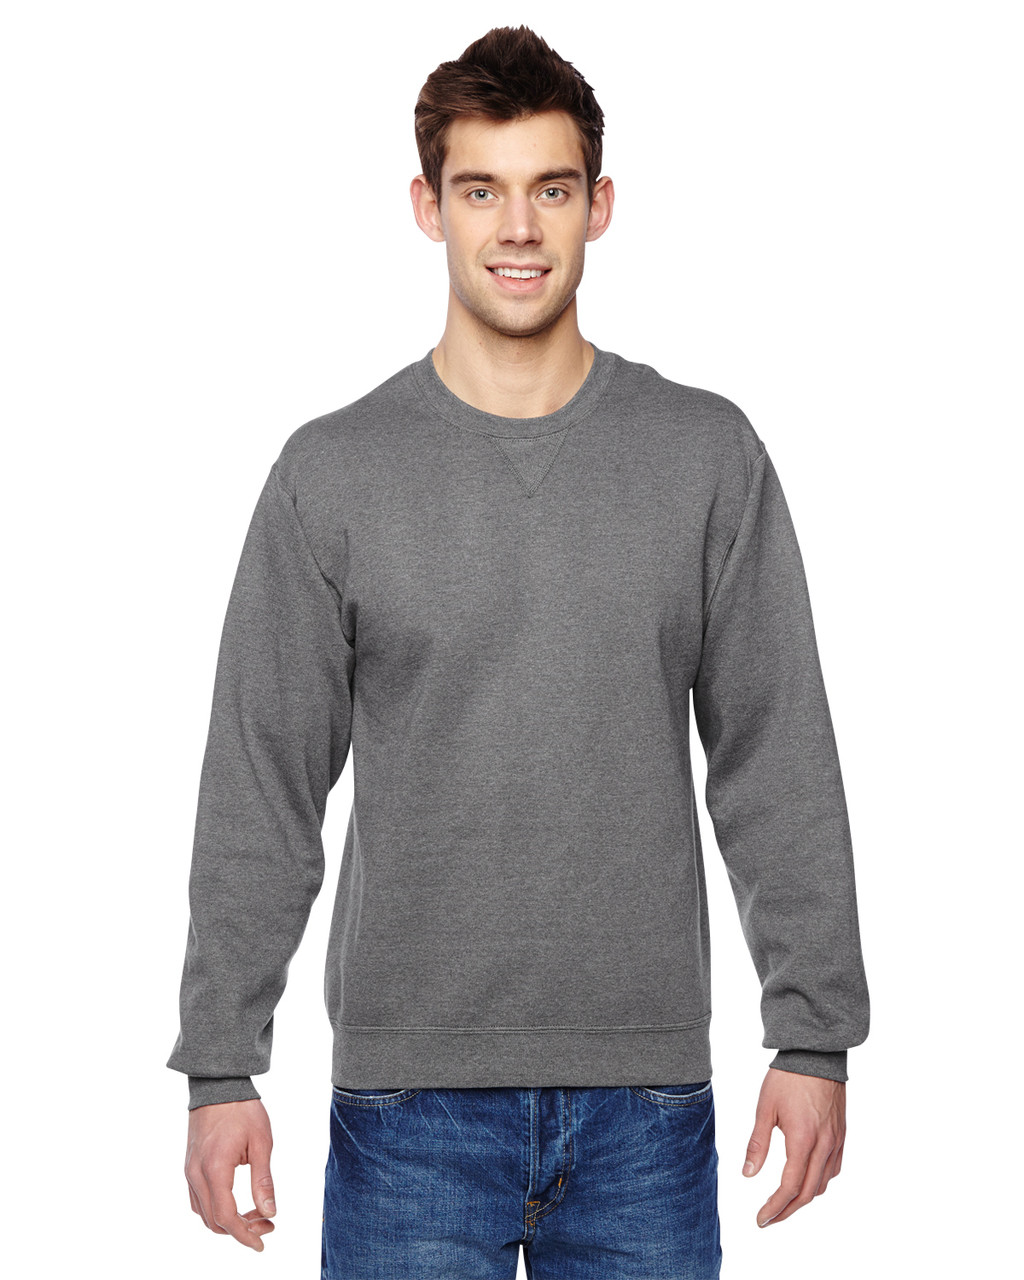 Charcoal Heather - SF72R Fruit of the Loom Sofspun® Crewneck Sweatshirt  | Blankclothing.ca